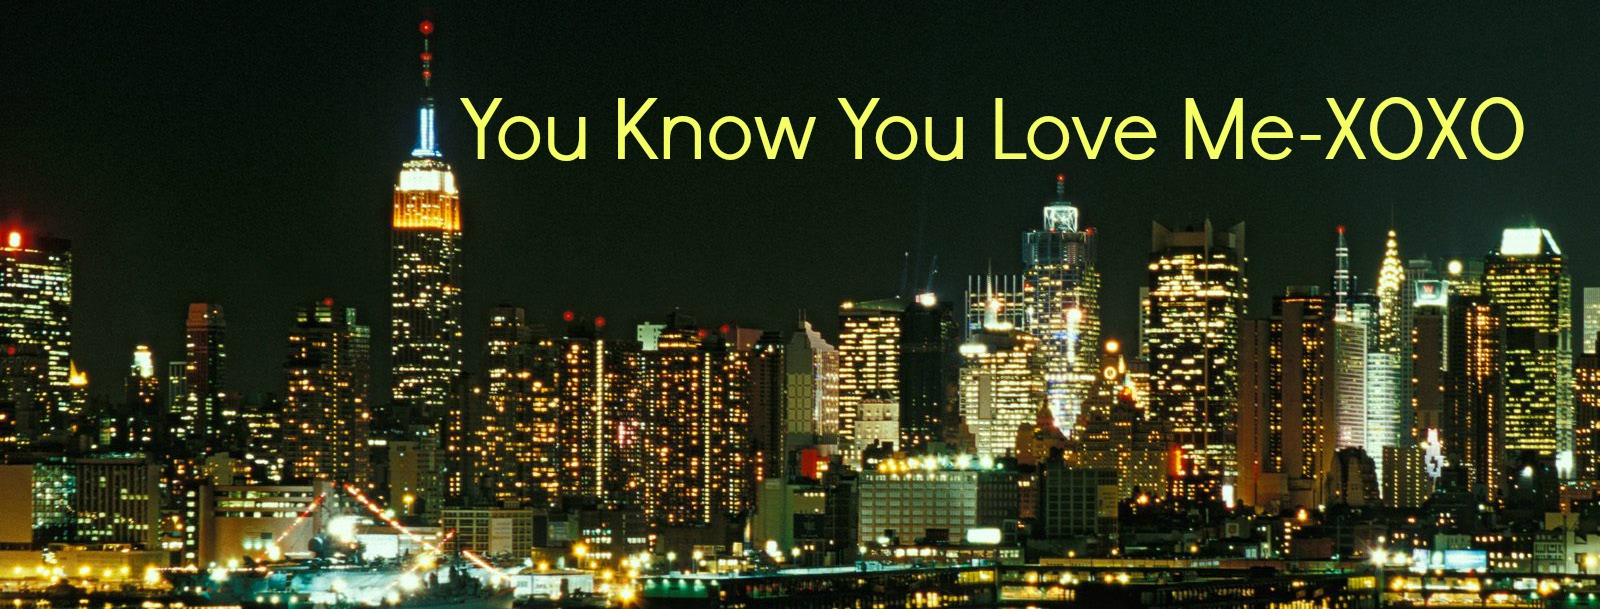 New York I Love You Xoxo Quotes : You Know You Love Me Xoxo Gossip Girl www.galleryhip.com - The ...